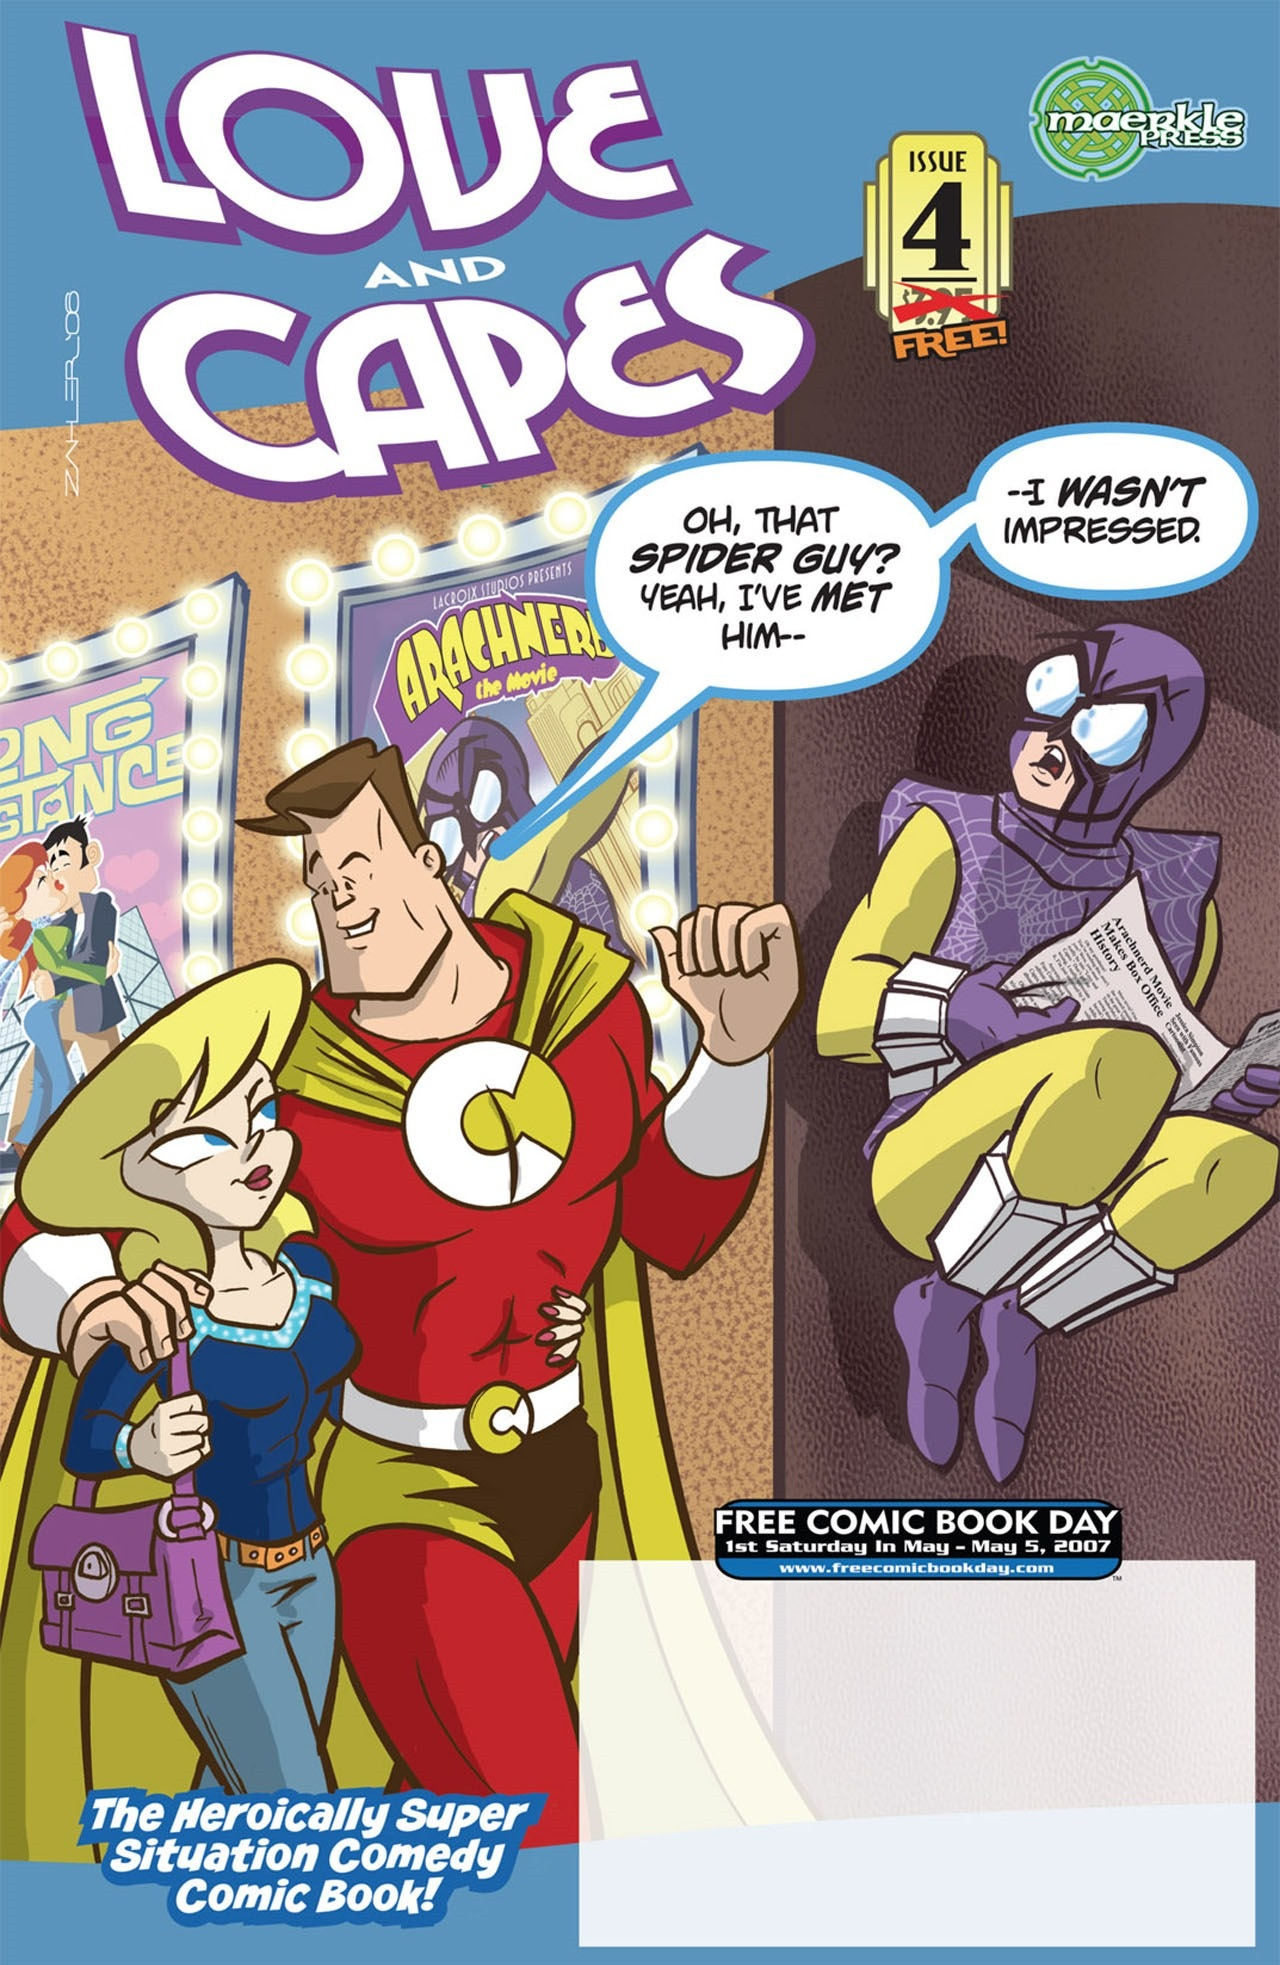 Love and Capes (2006) #4 FCBD by Thom Zahler.